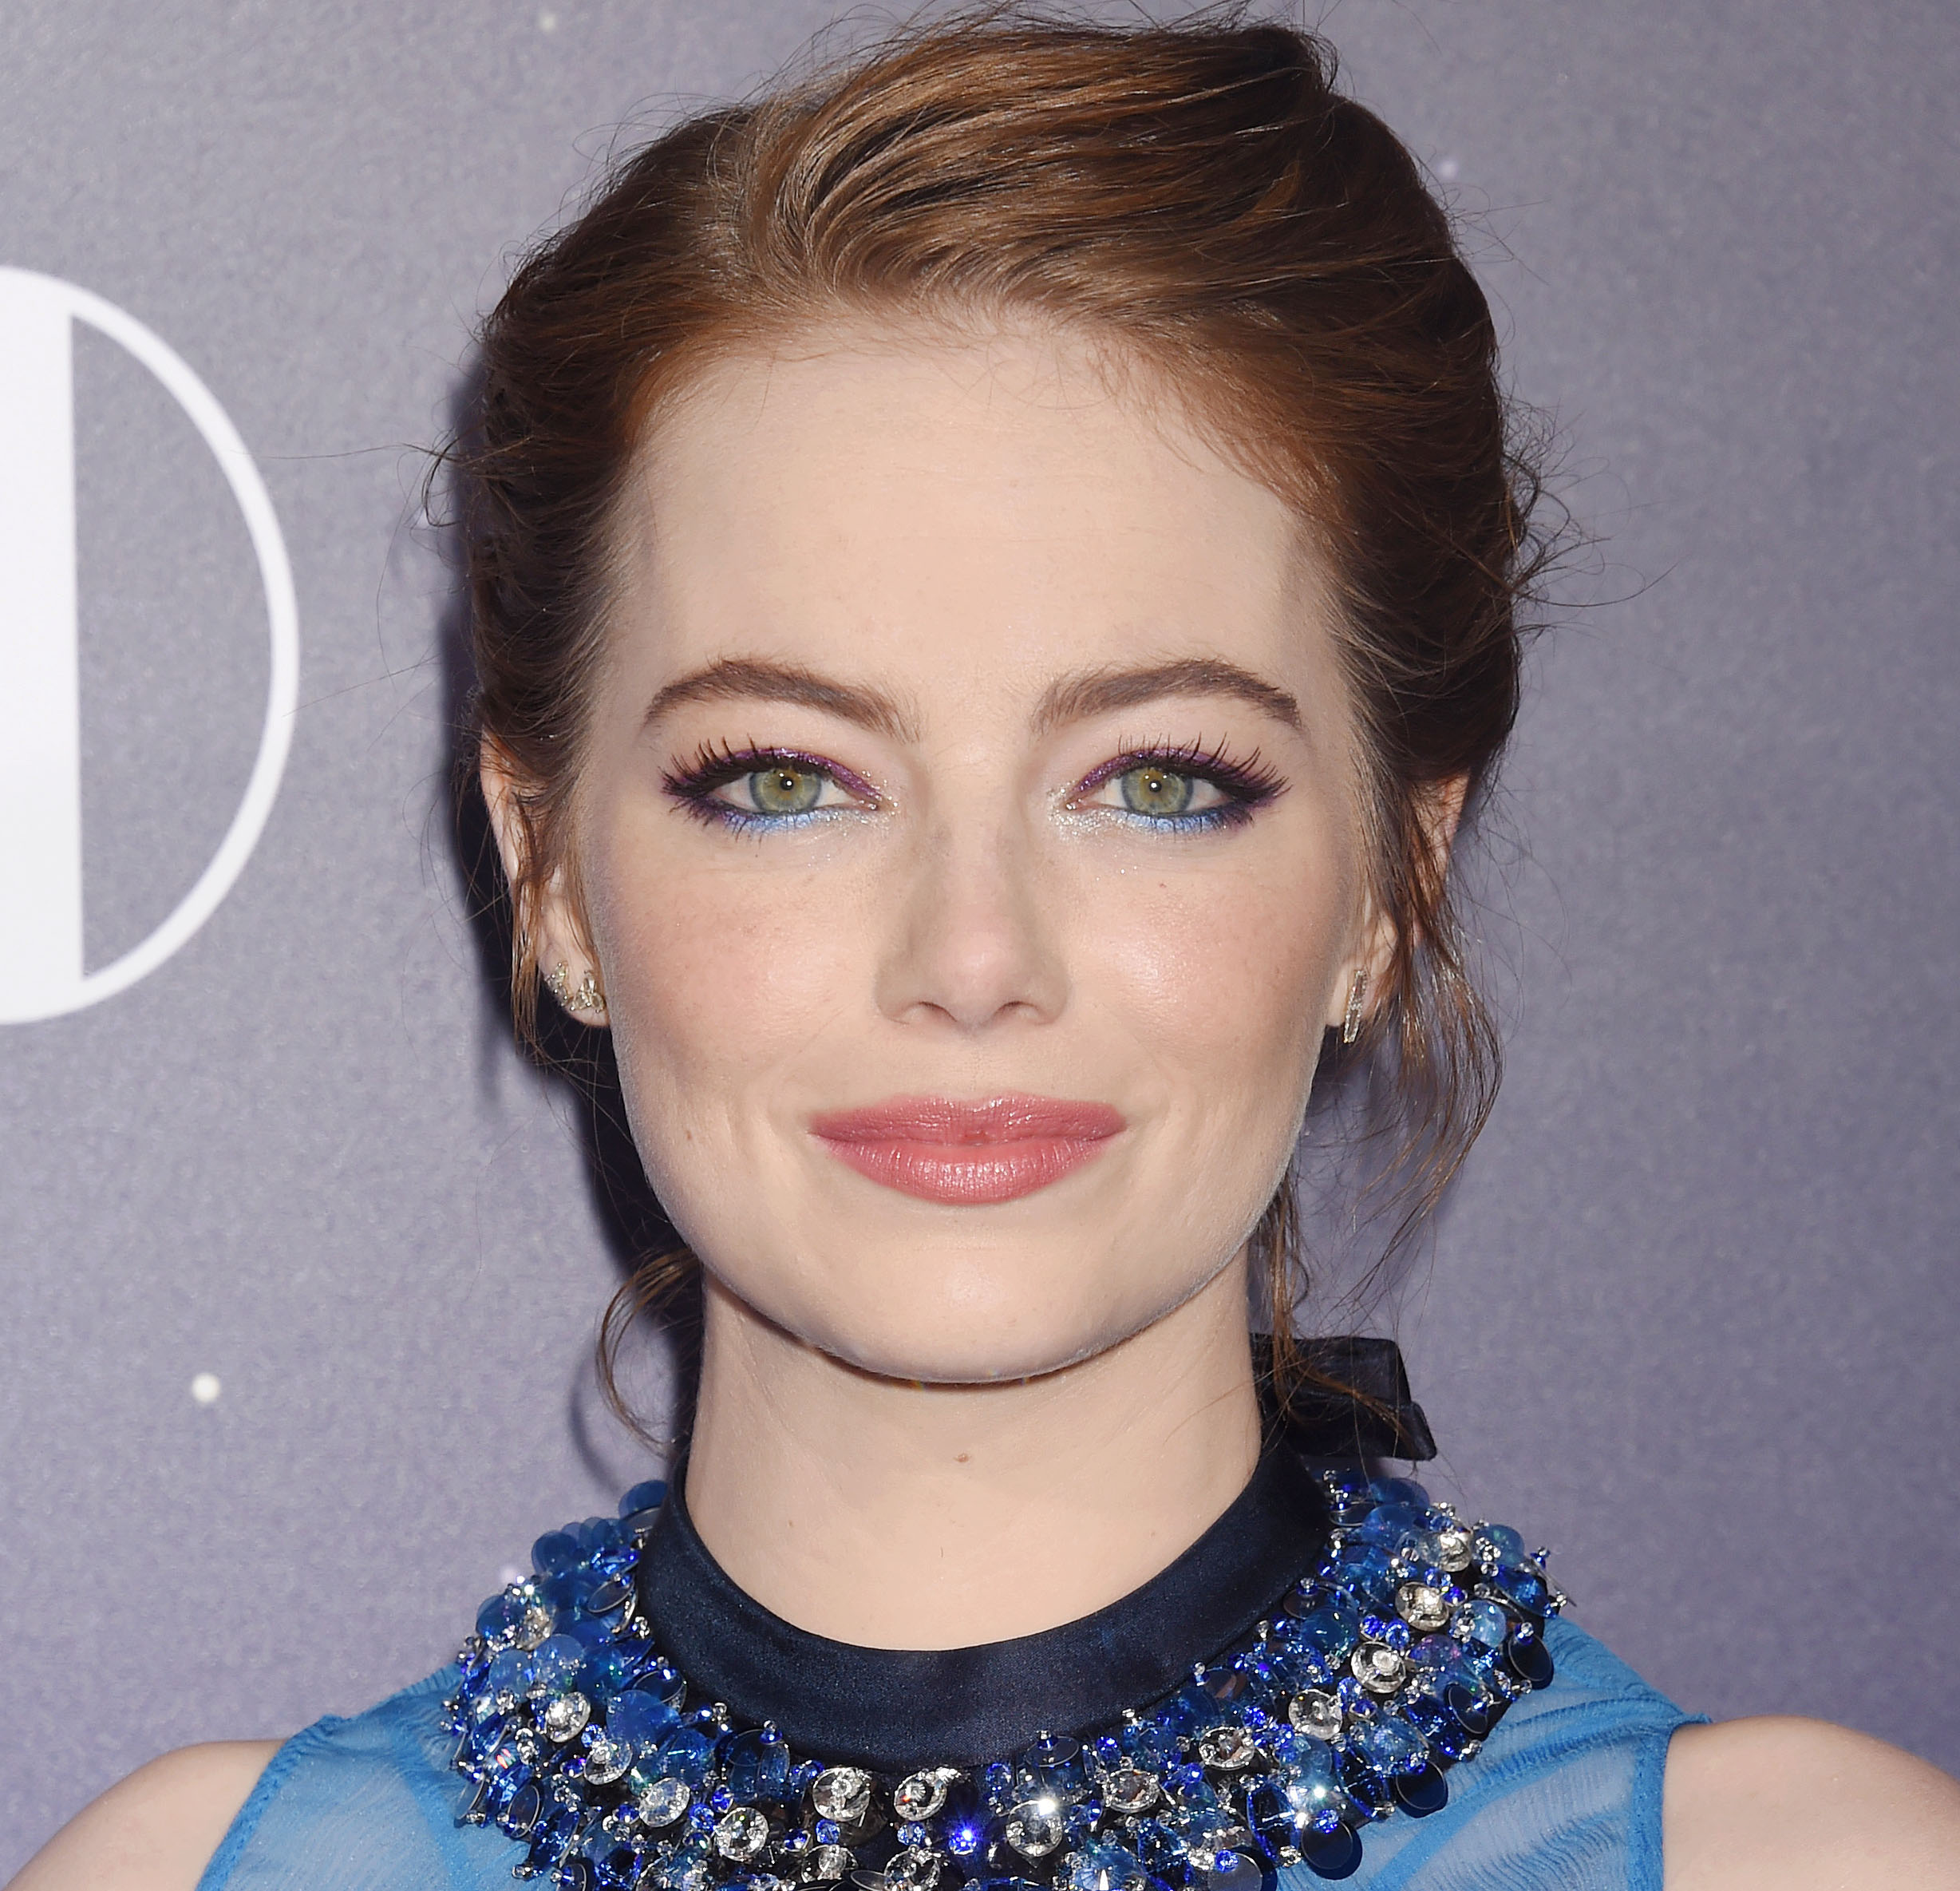 Emma Stone's quirky blouse looks like the coolest science experiment